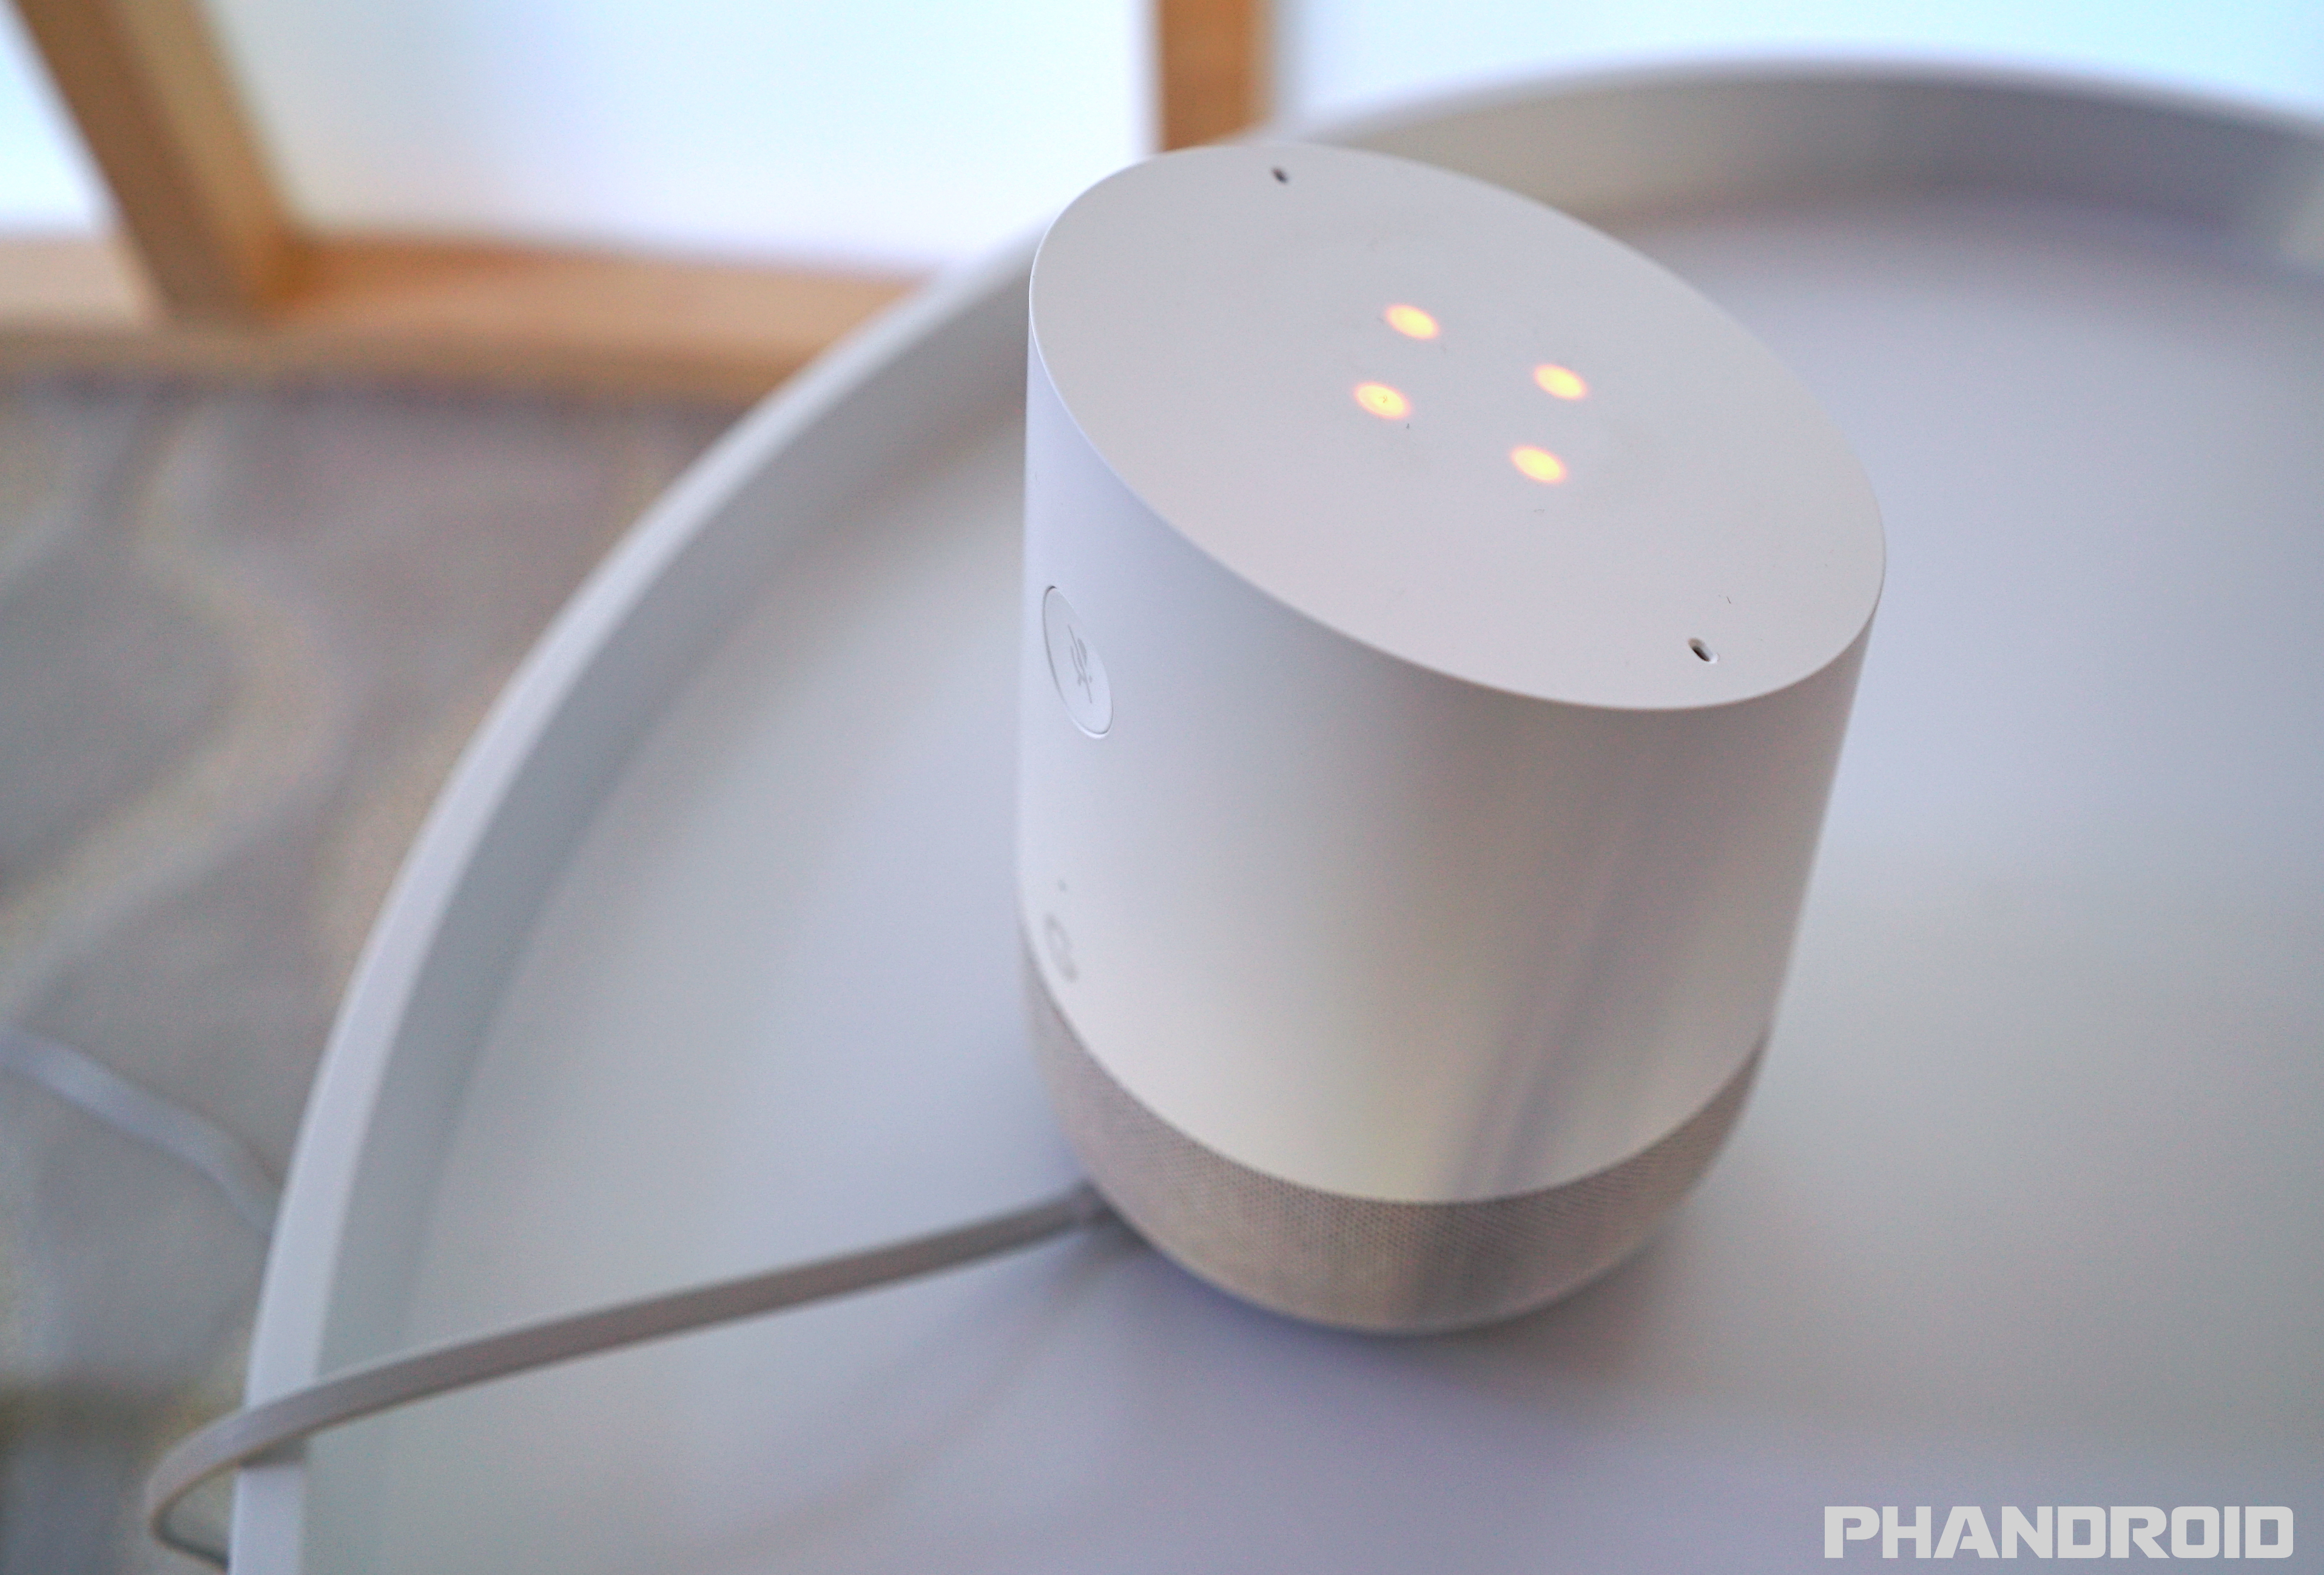 You can now use Google Home to make phone calls